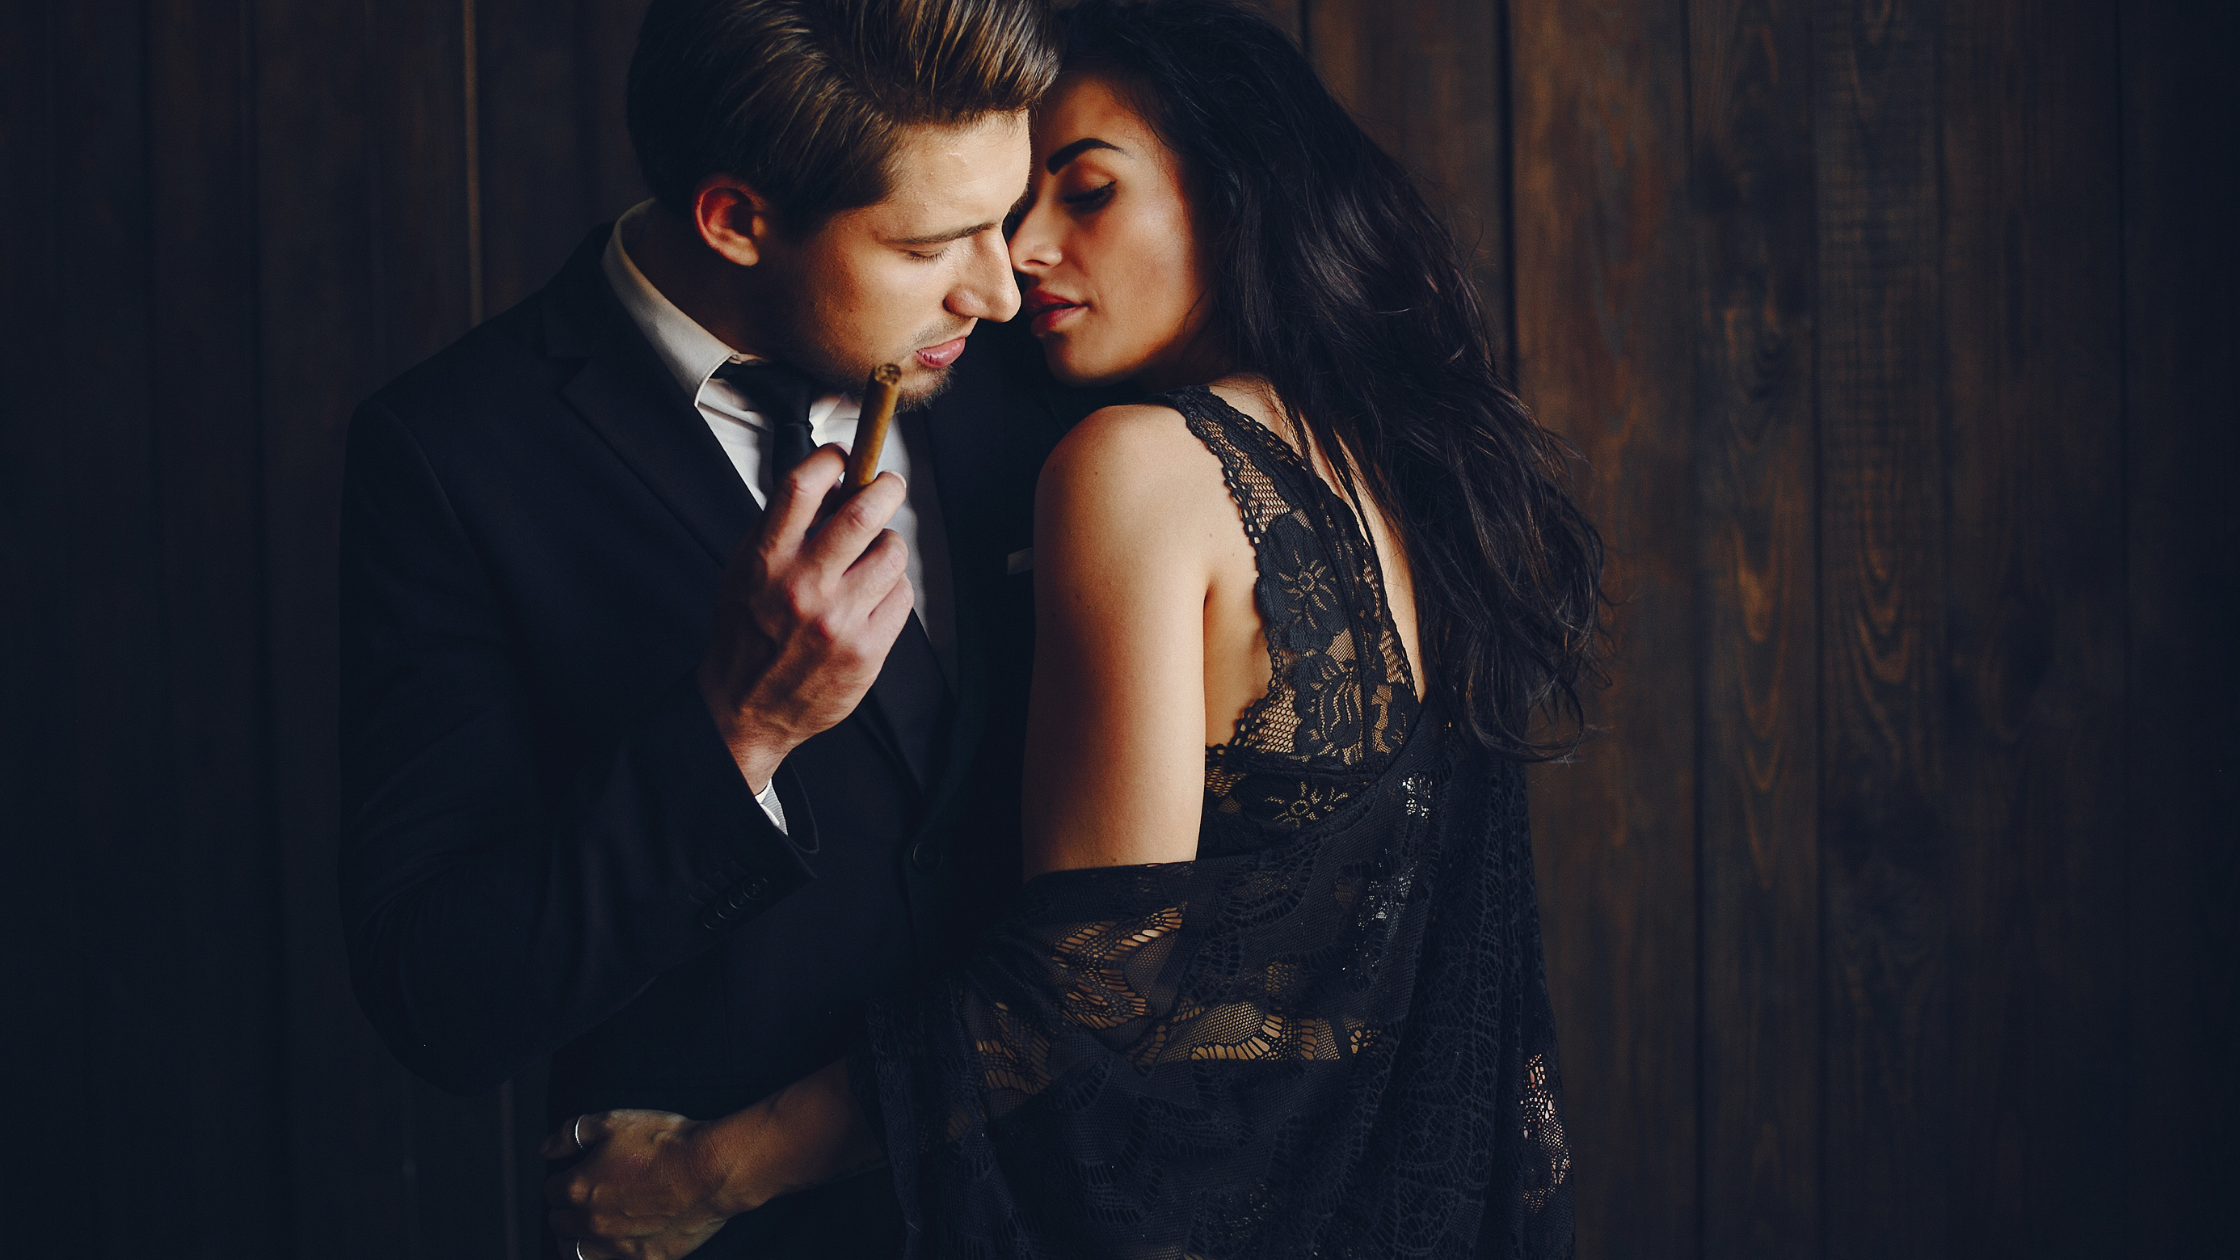 Top 15 Expert Foreplay Ideas For a Spicy Sex Life